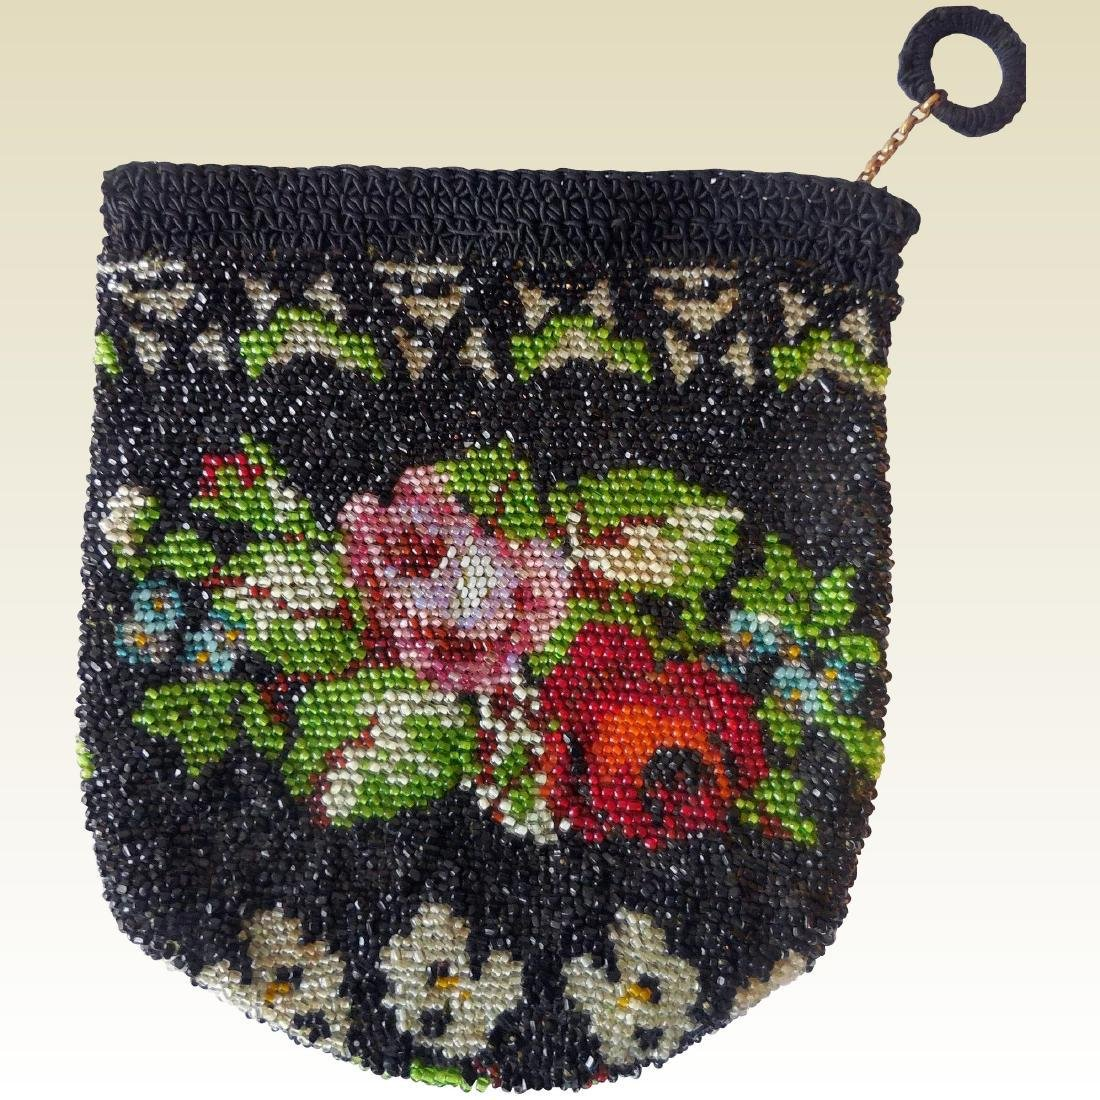 Vintage Crocheted & Beaded Lady's Bag